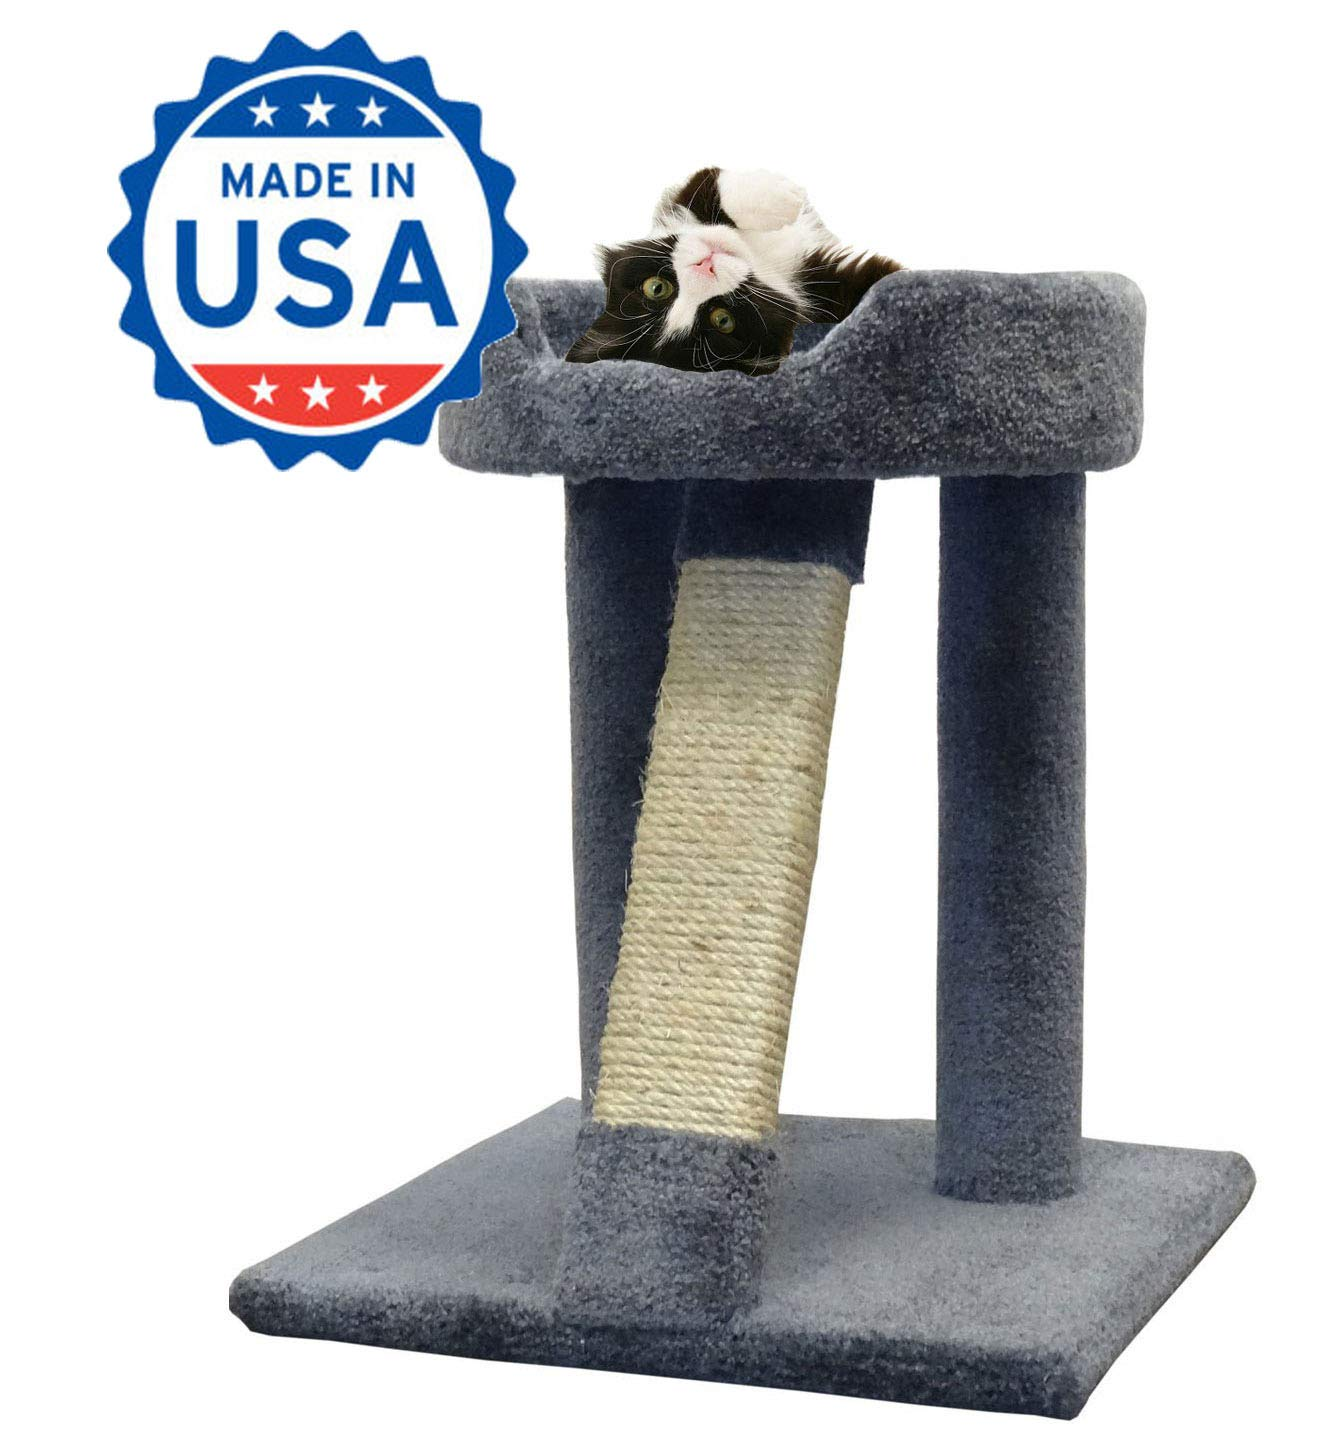 Cozycatfurniture 24 Inches Wood Cat Scratcher Made In Usa With Large Bed Unoiled Sisal Rope Pole Gray Carpet